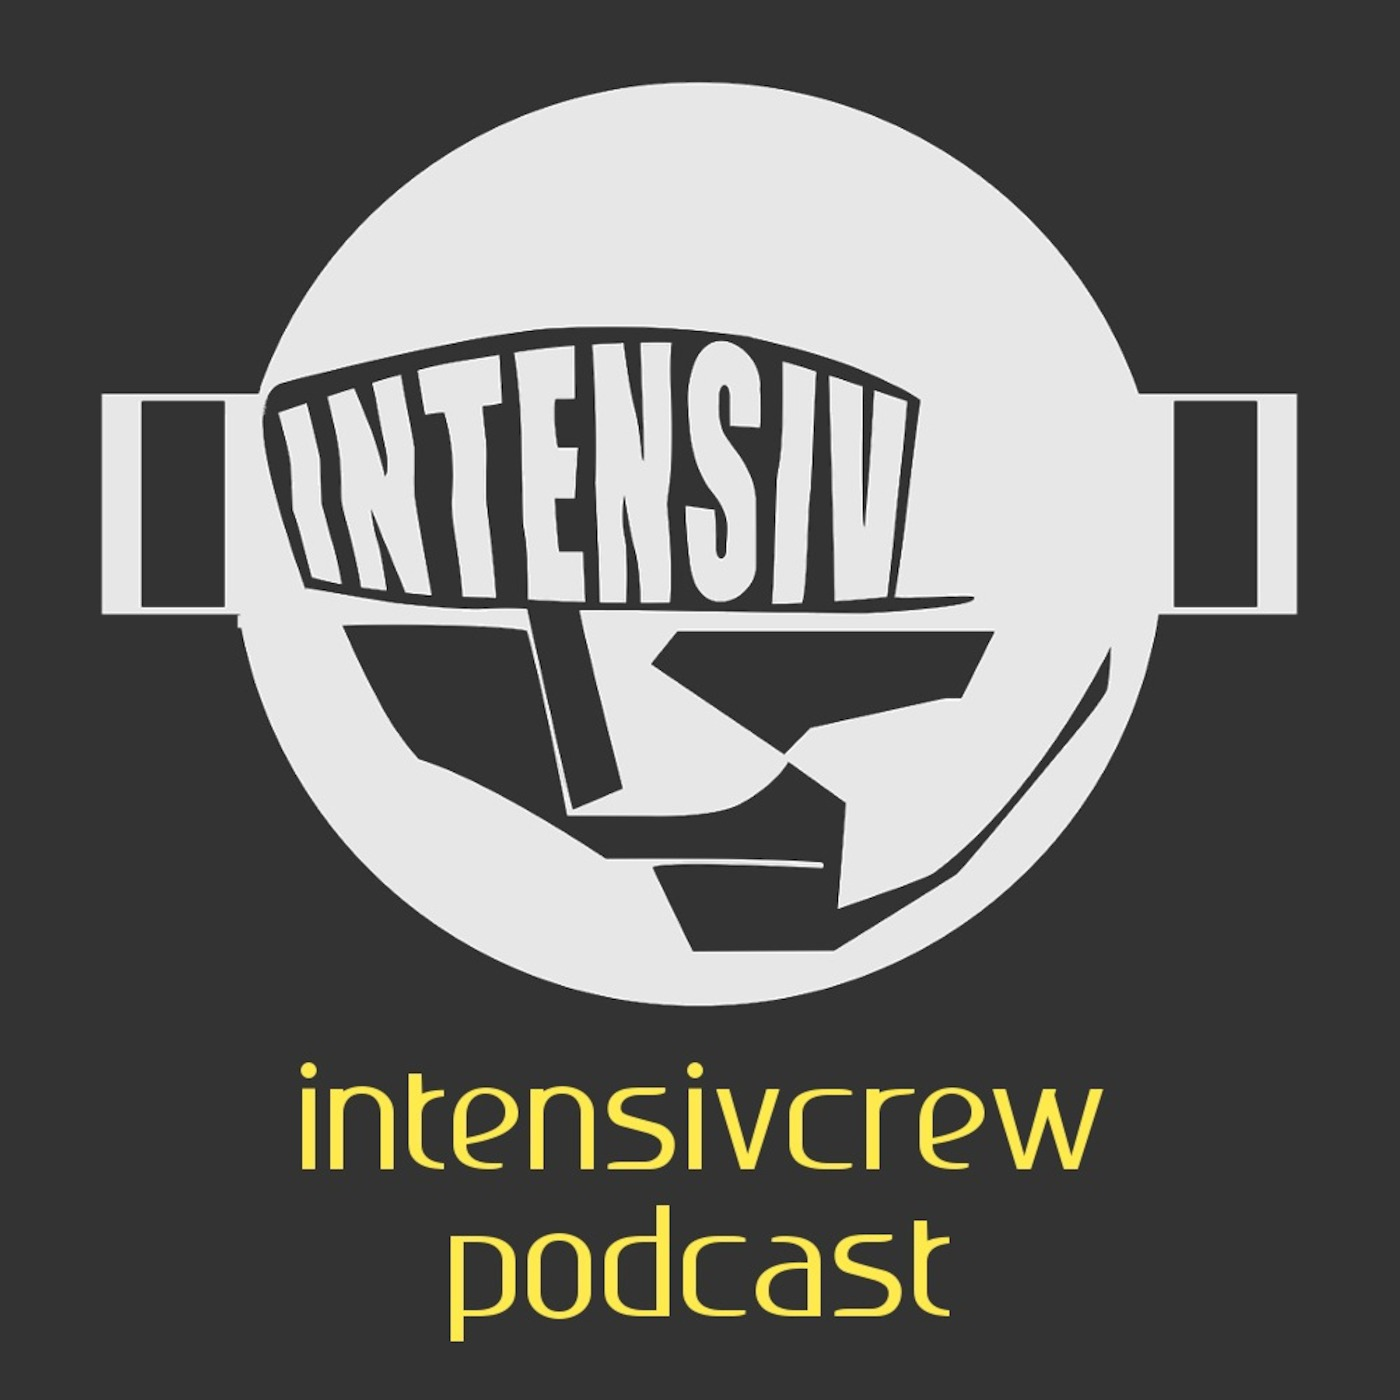 intensivcrew podcast